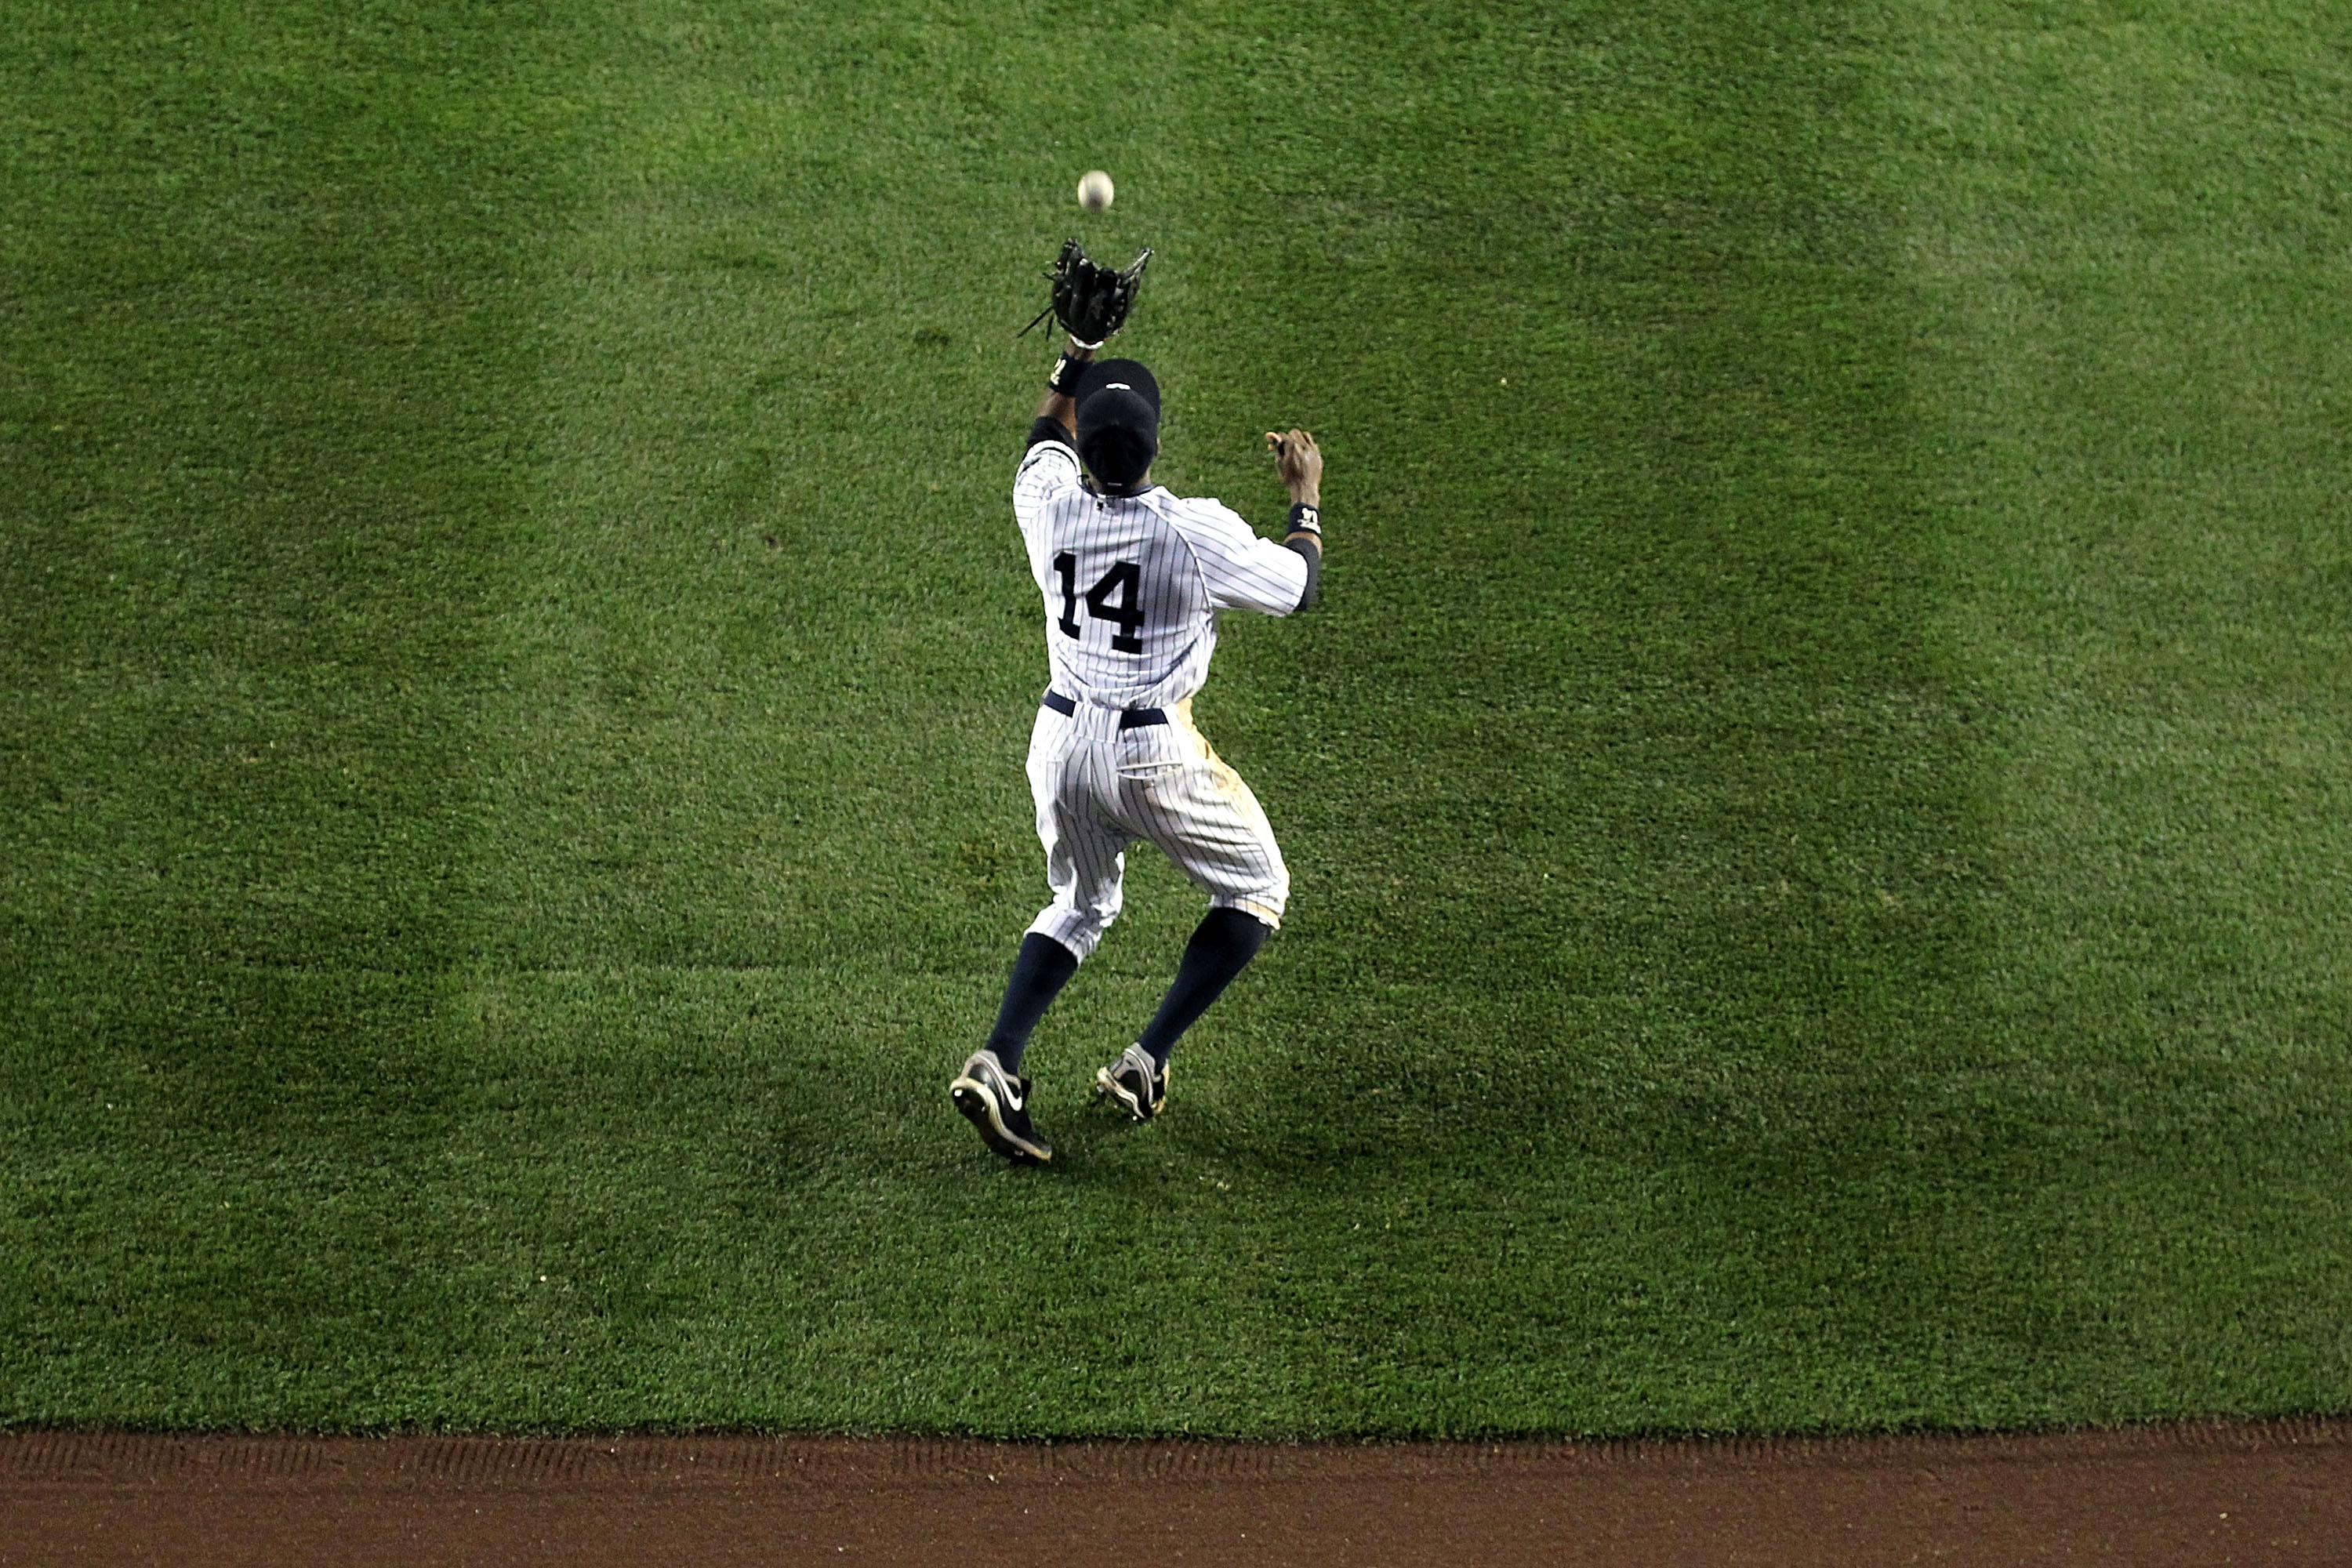 NEW YORK - OCTOBER 19:  Curtis Granderson #14 of the New York Yankees catches a fly ball in centerfield against the Texas Rangers in Game Four of the ALCS during the 2010 MLB Playoffs at Yankee Stadium on October 19, 2010 in the Bronx borough of New York